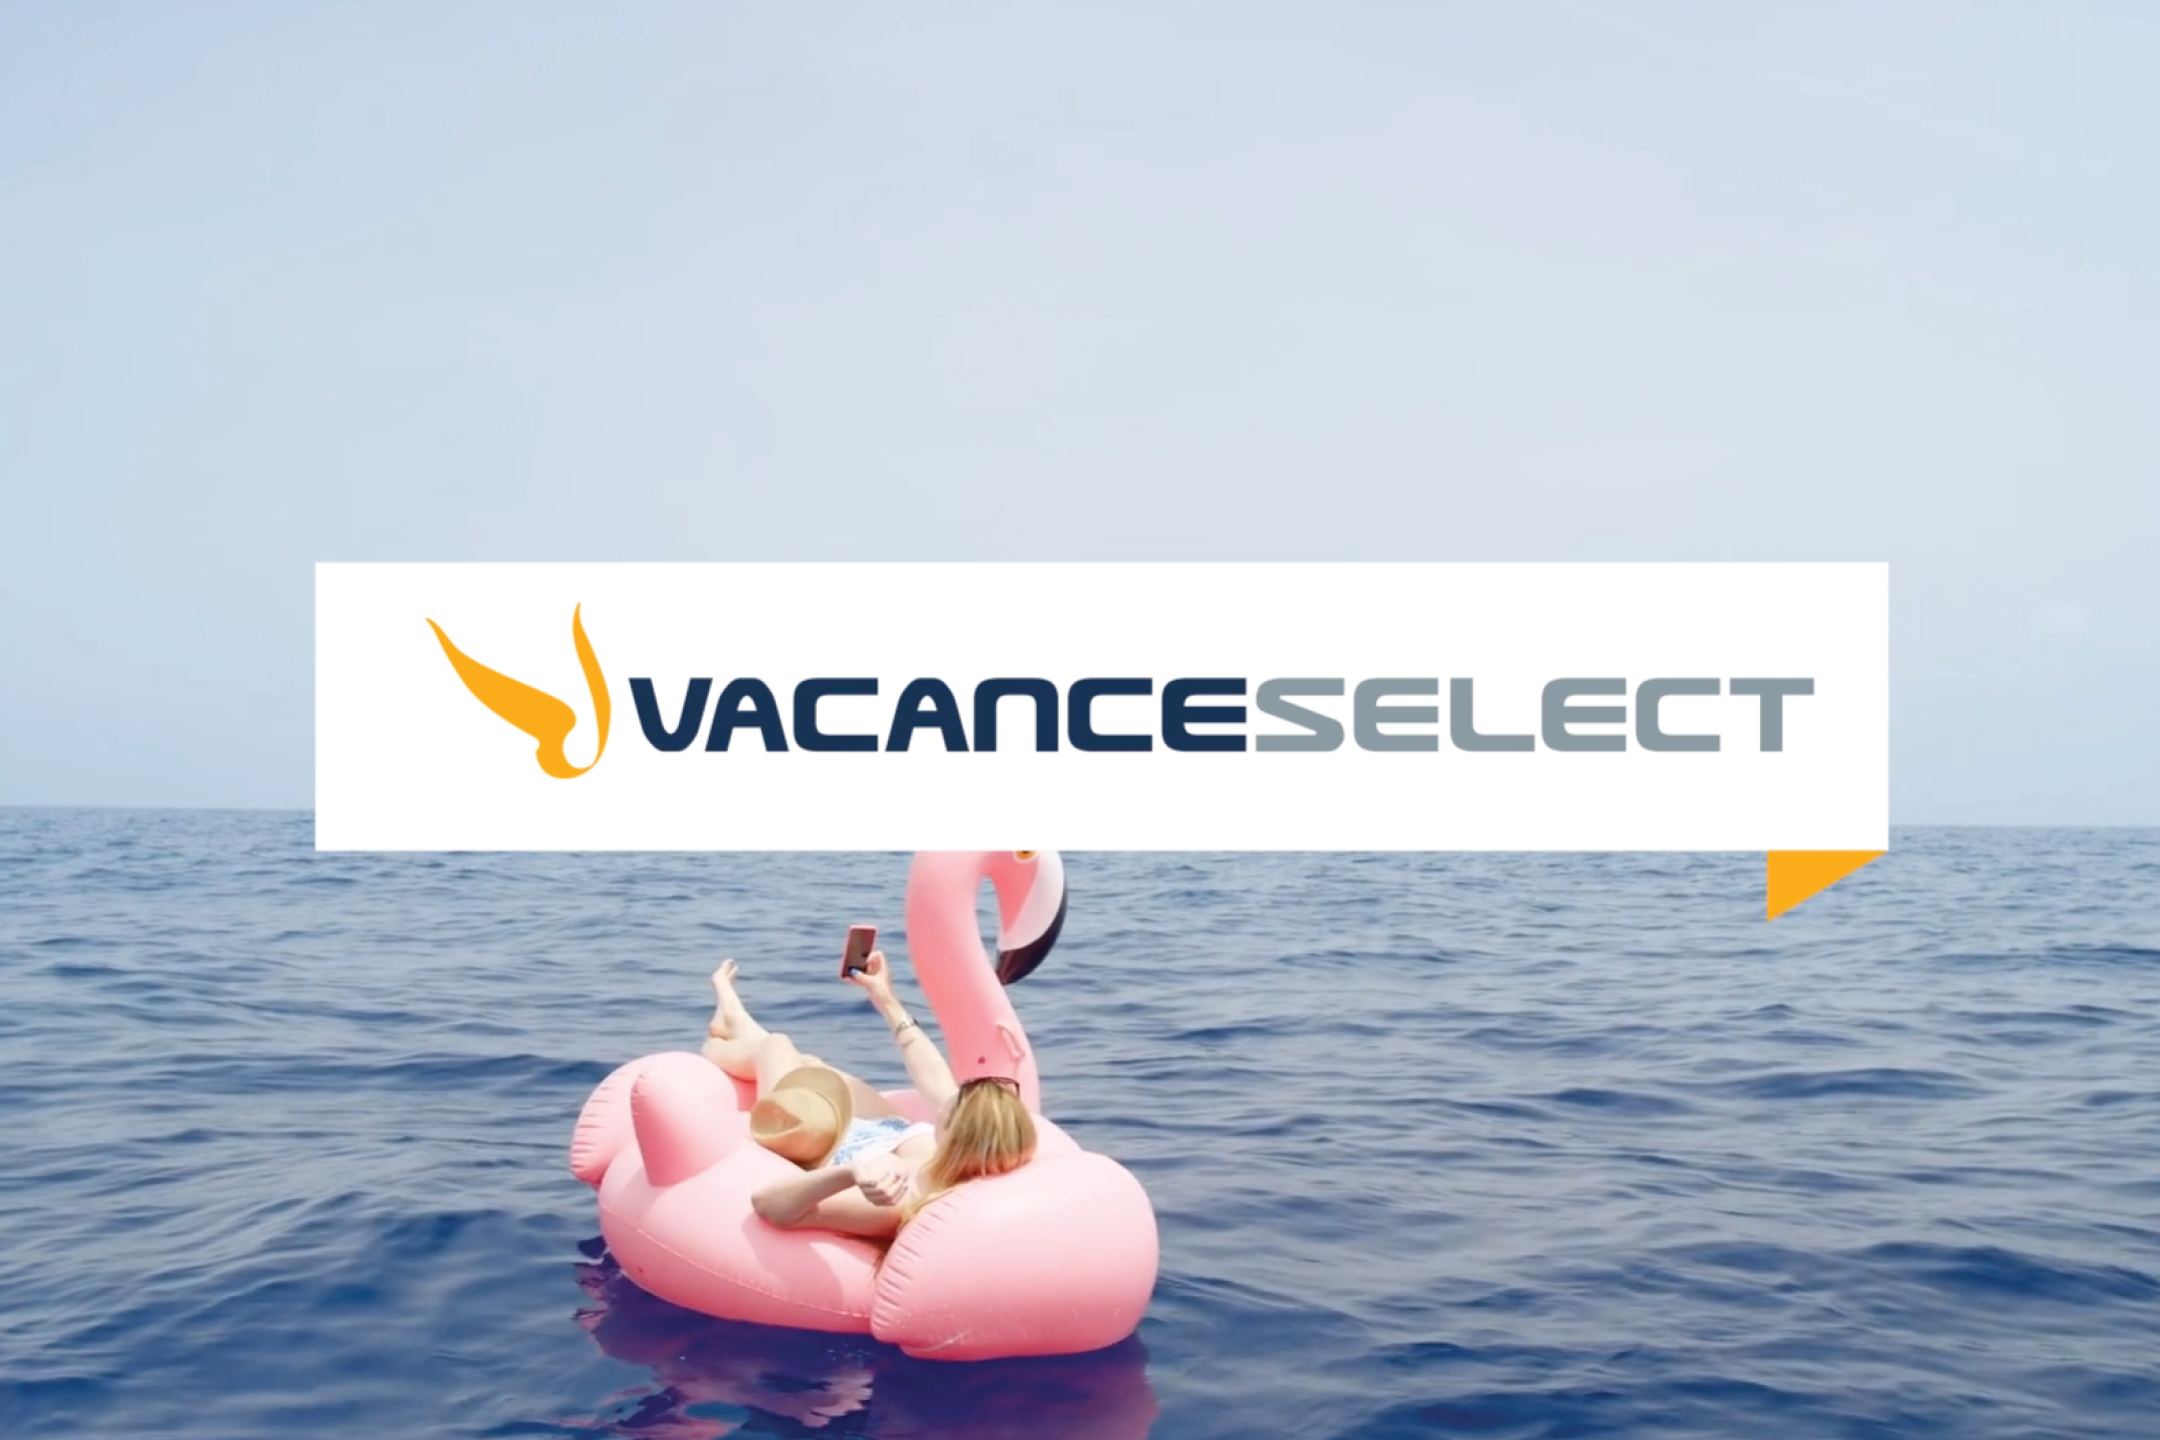 Vacanceselect: Dream holiday